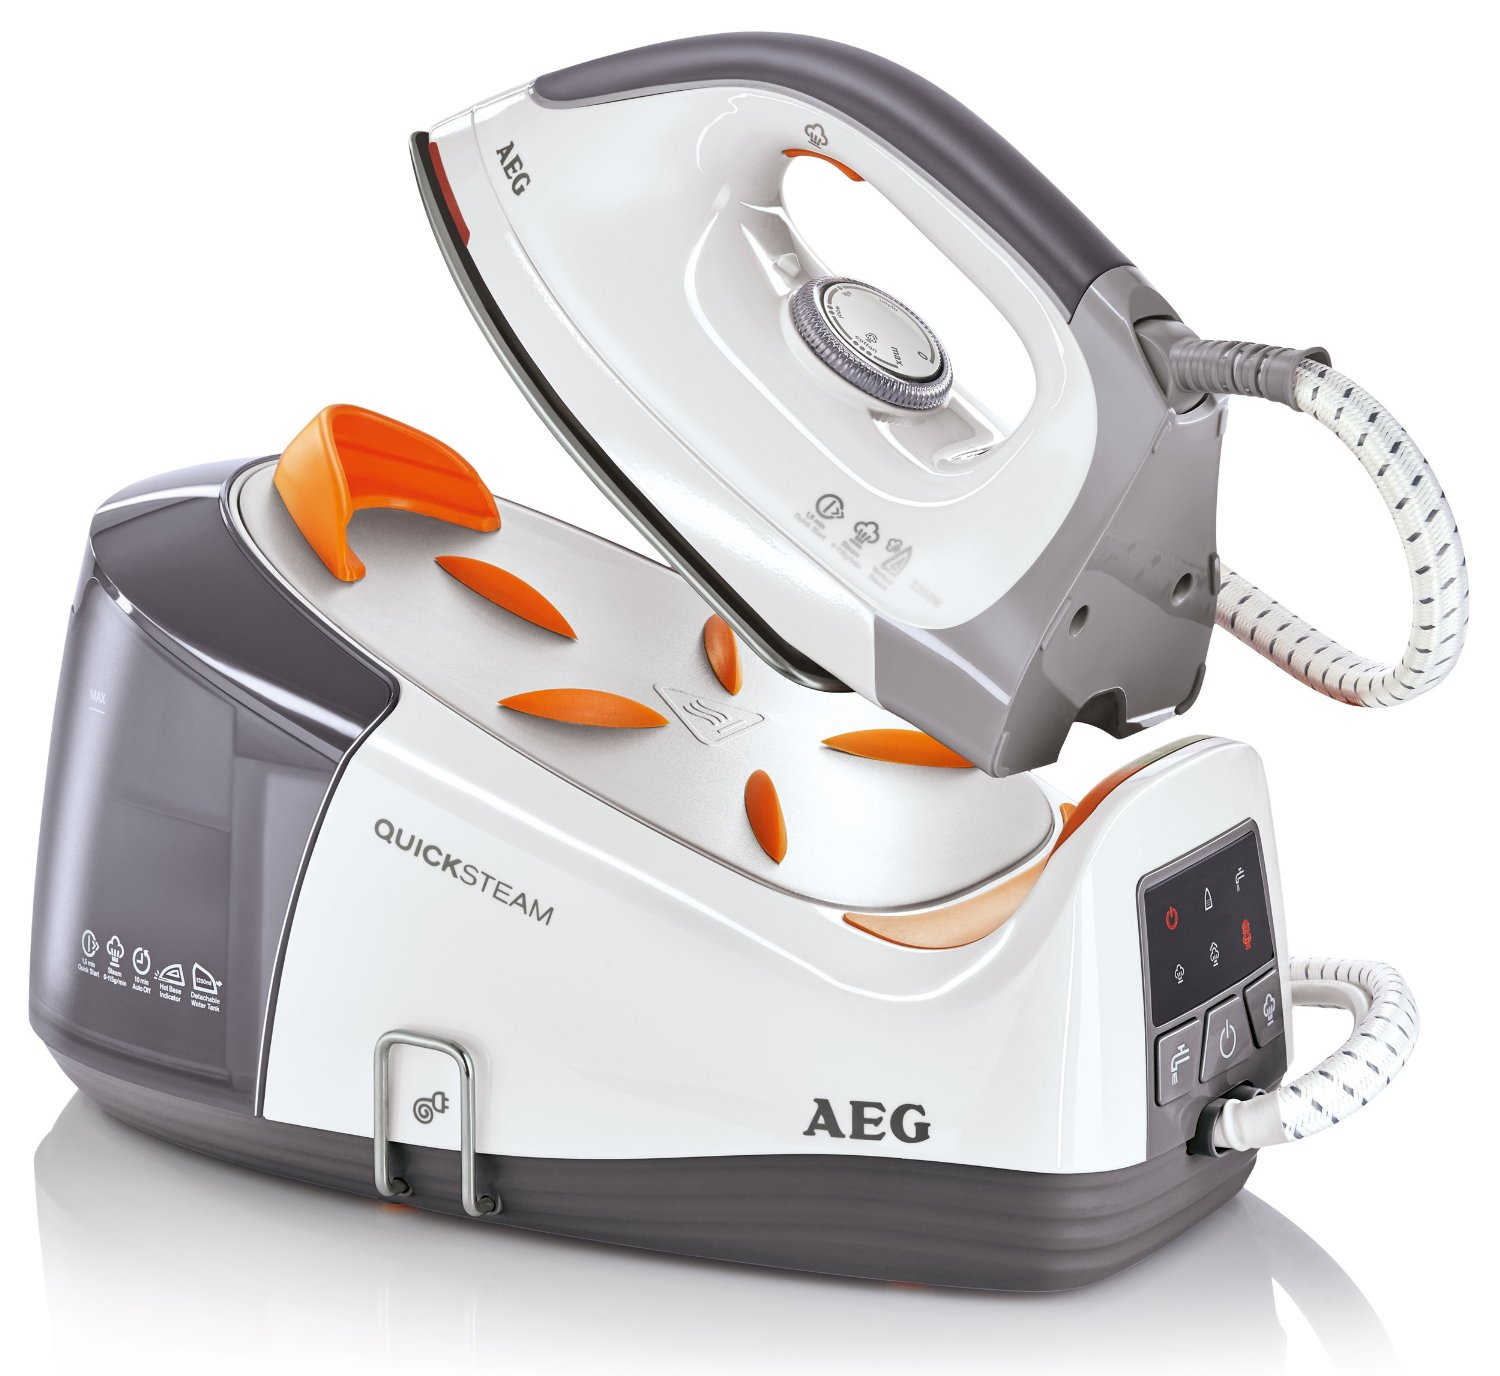 AEG DBS3350U 2350W Quick Steam Generator Iron in White and Silver (DBS3350)